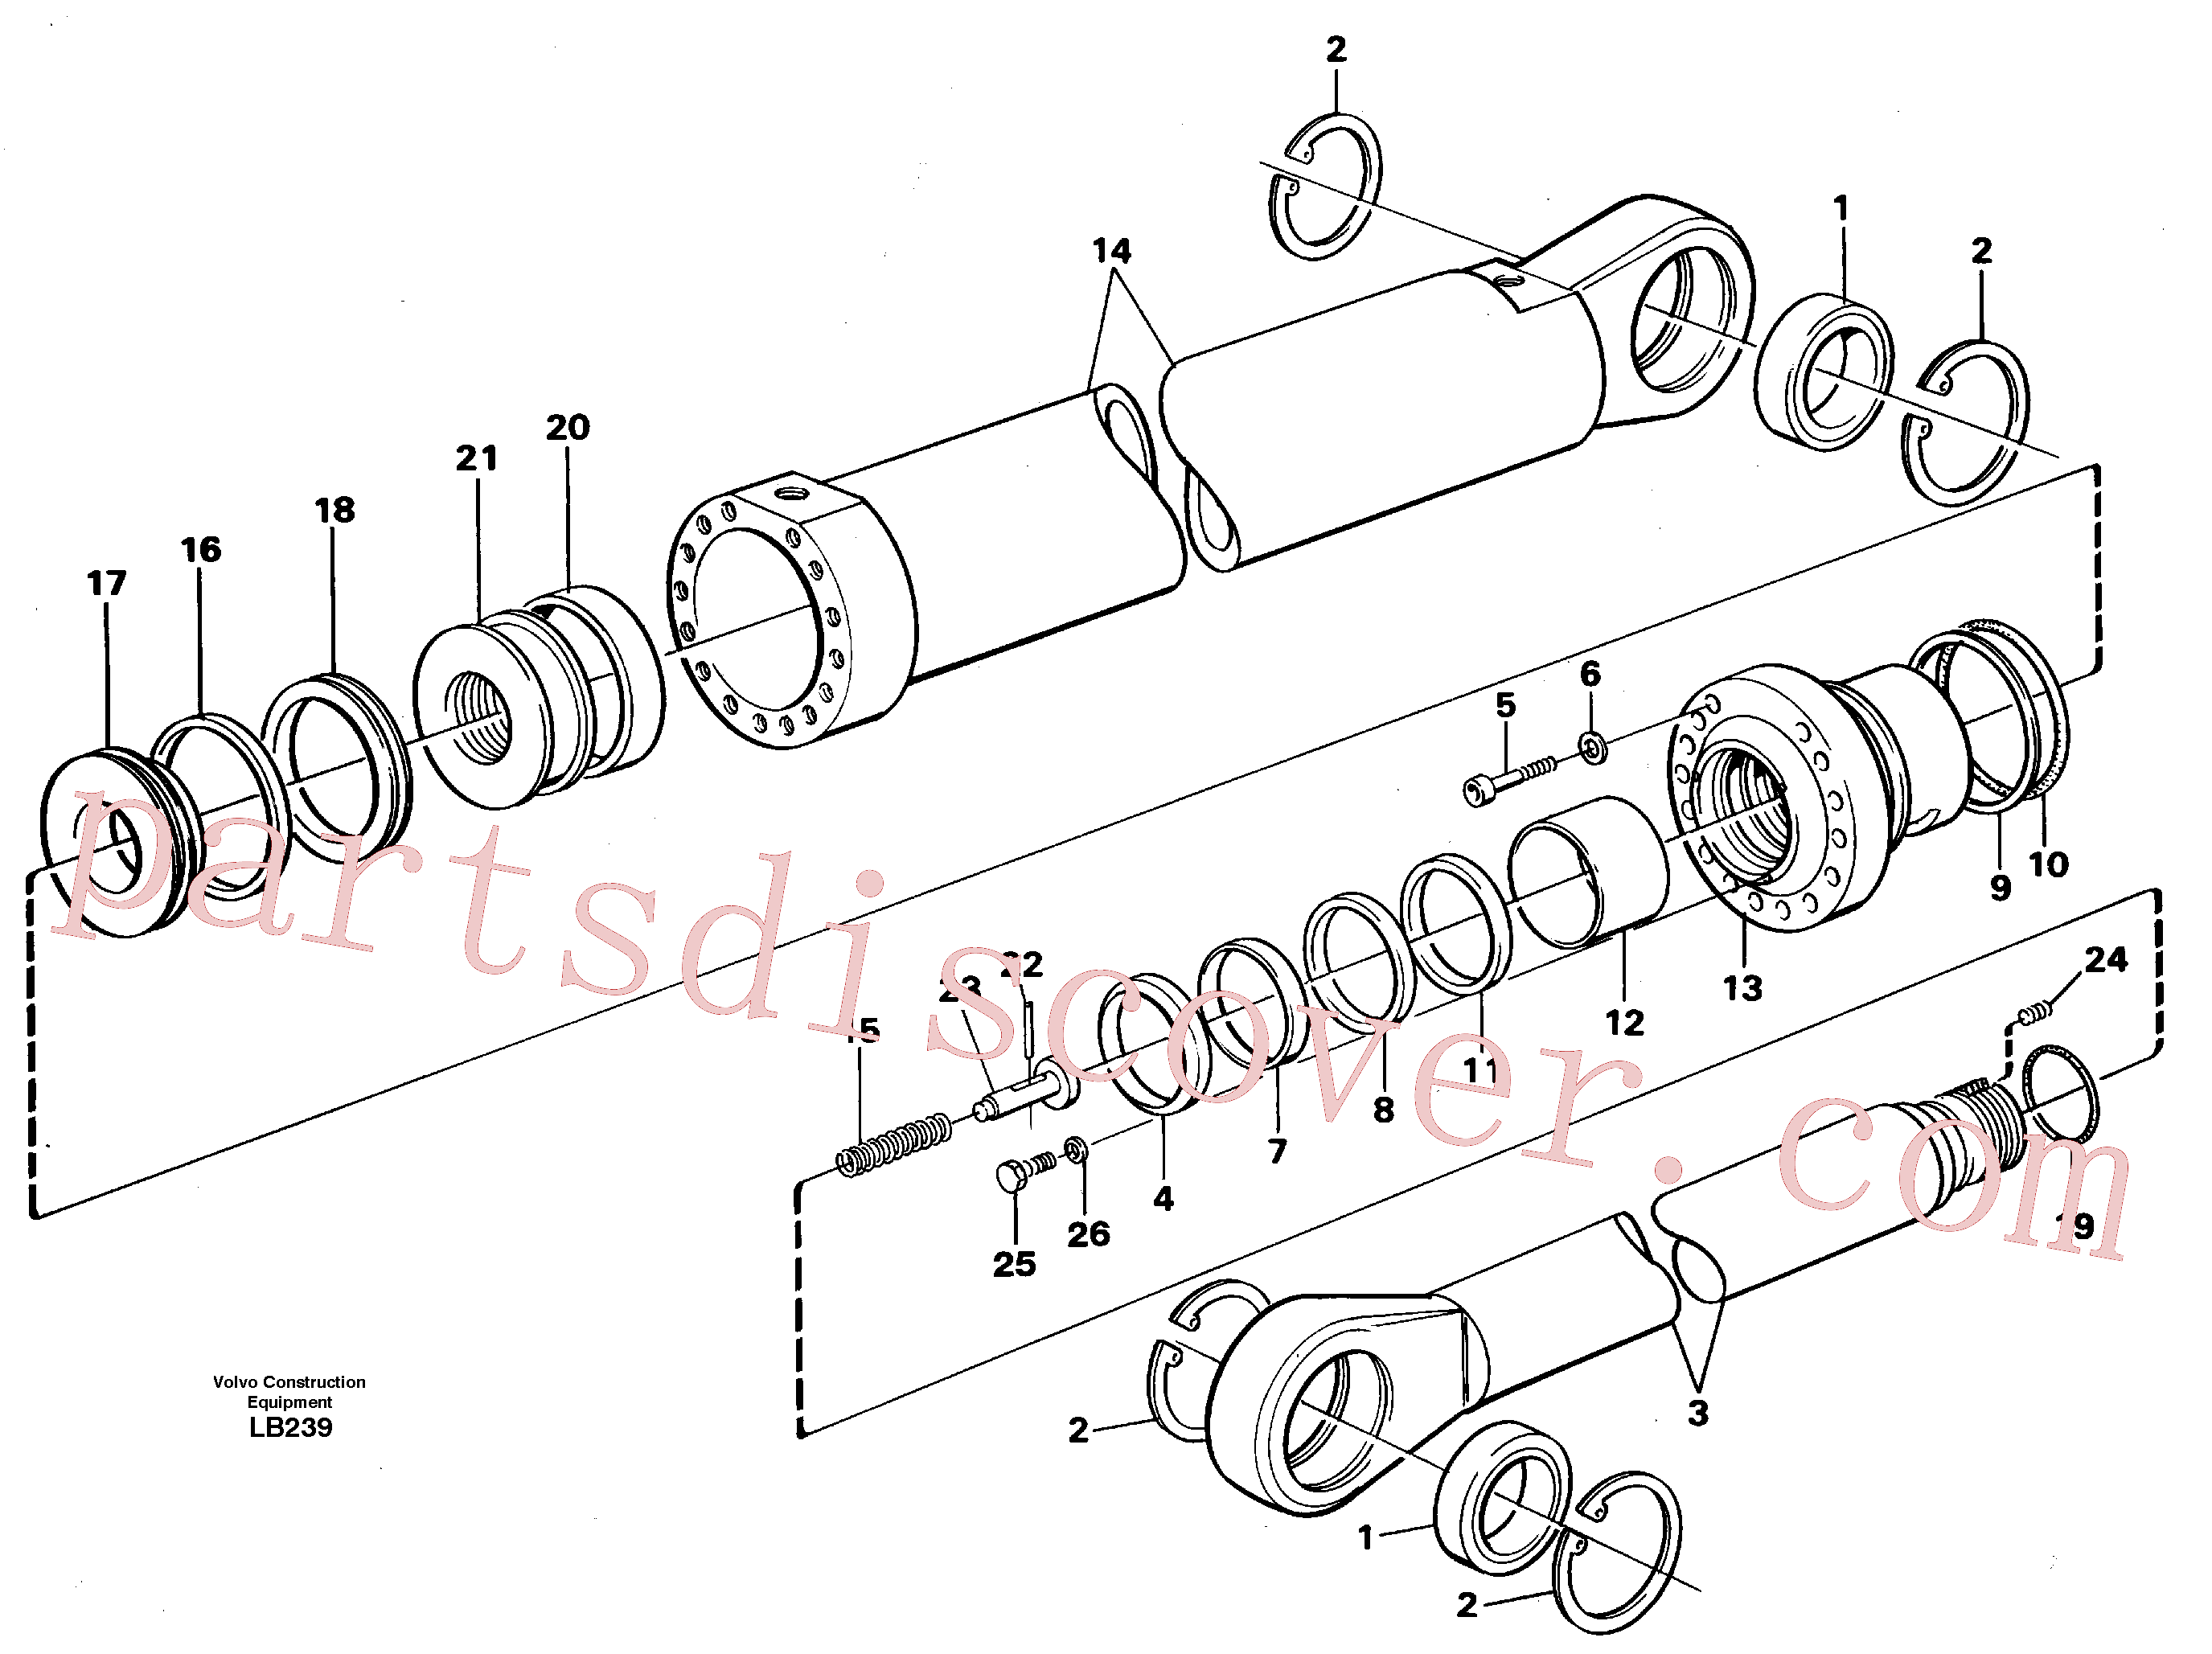 VOE14231655 for Volvo Dipper arm cylinder, material handling equipment(LB239 assembly)